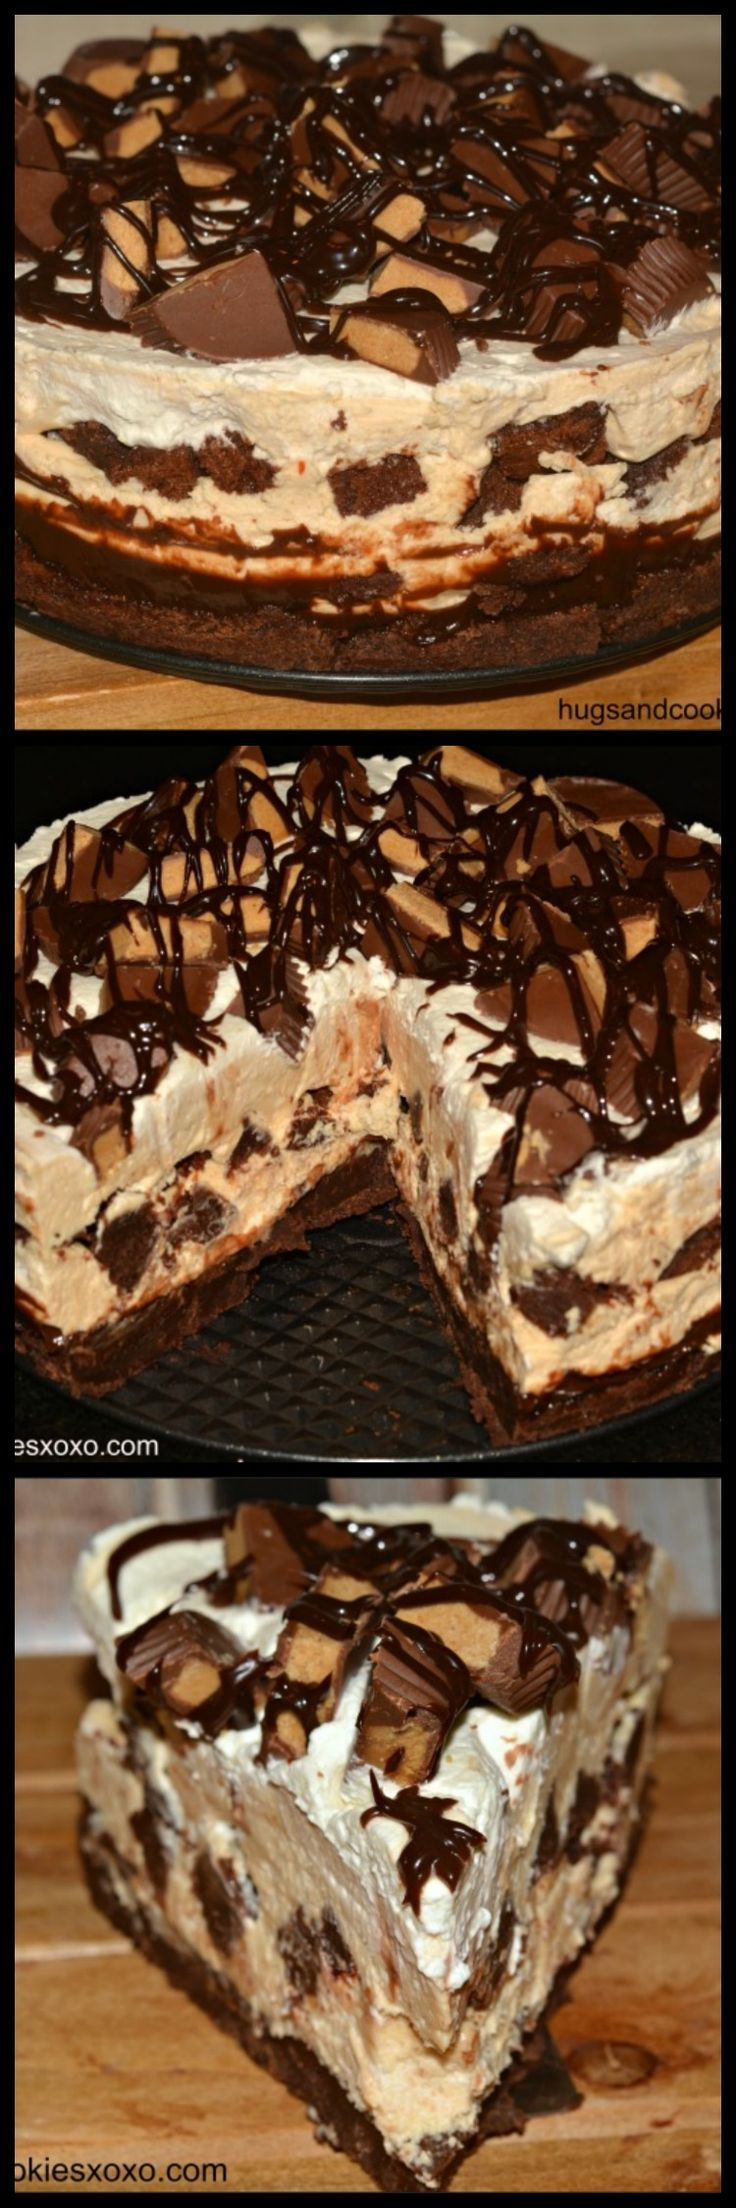 Peanut Butter Cup Brownie Cheesecake!! This is a Show Stopping Dessert and Tastes Like Heaven!!